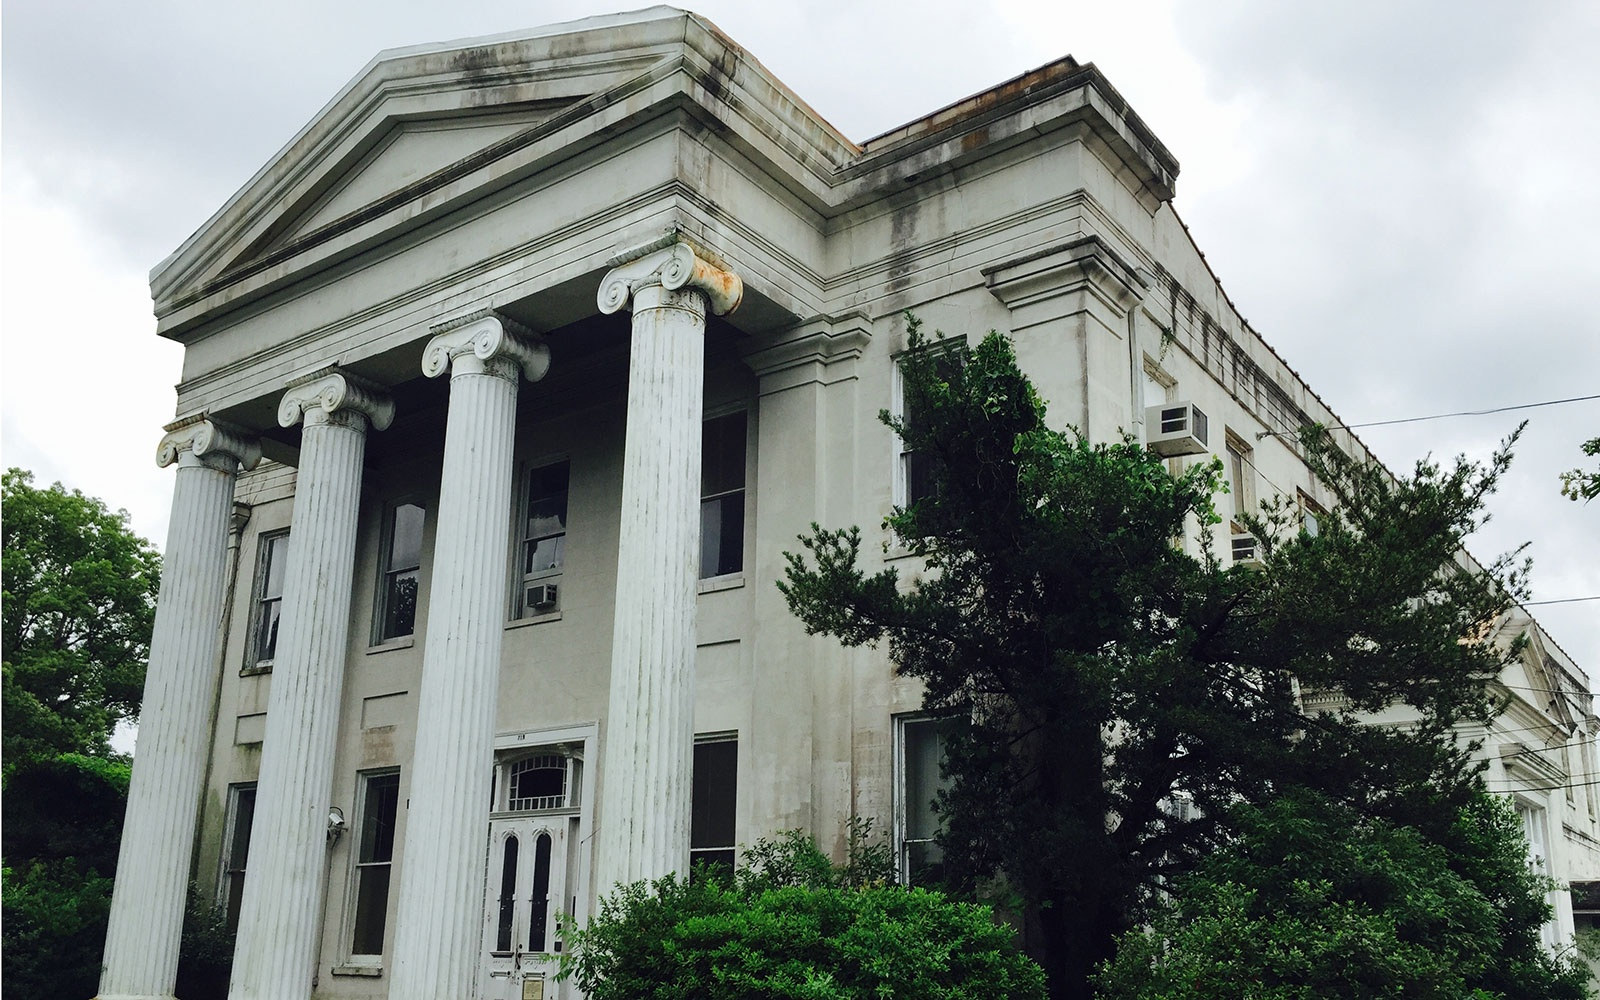 Carrollton Courthouse in New Orleans, Louisiana